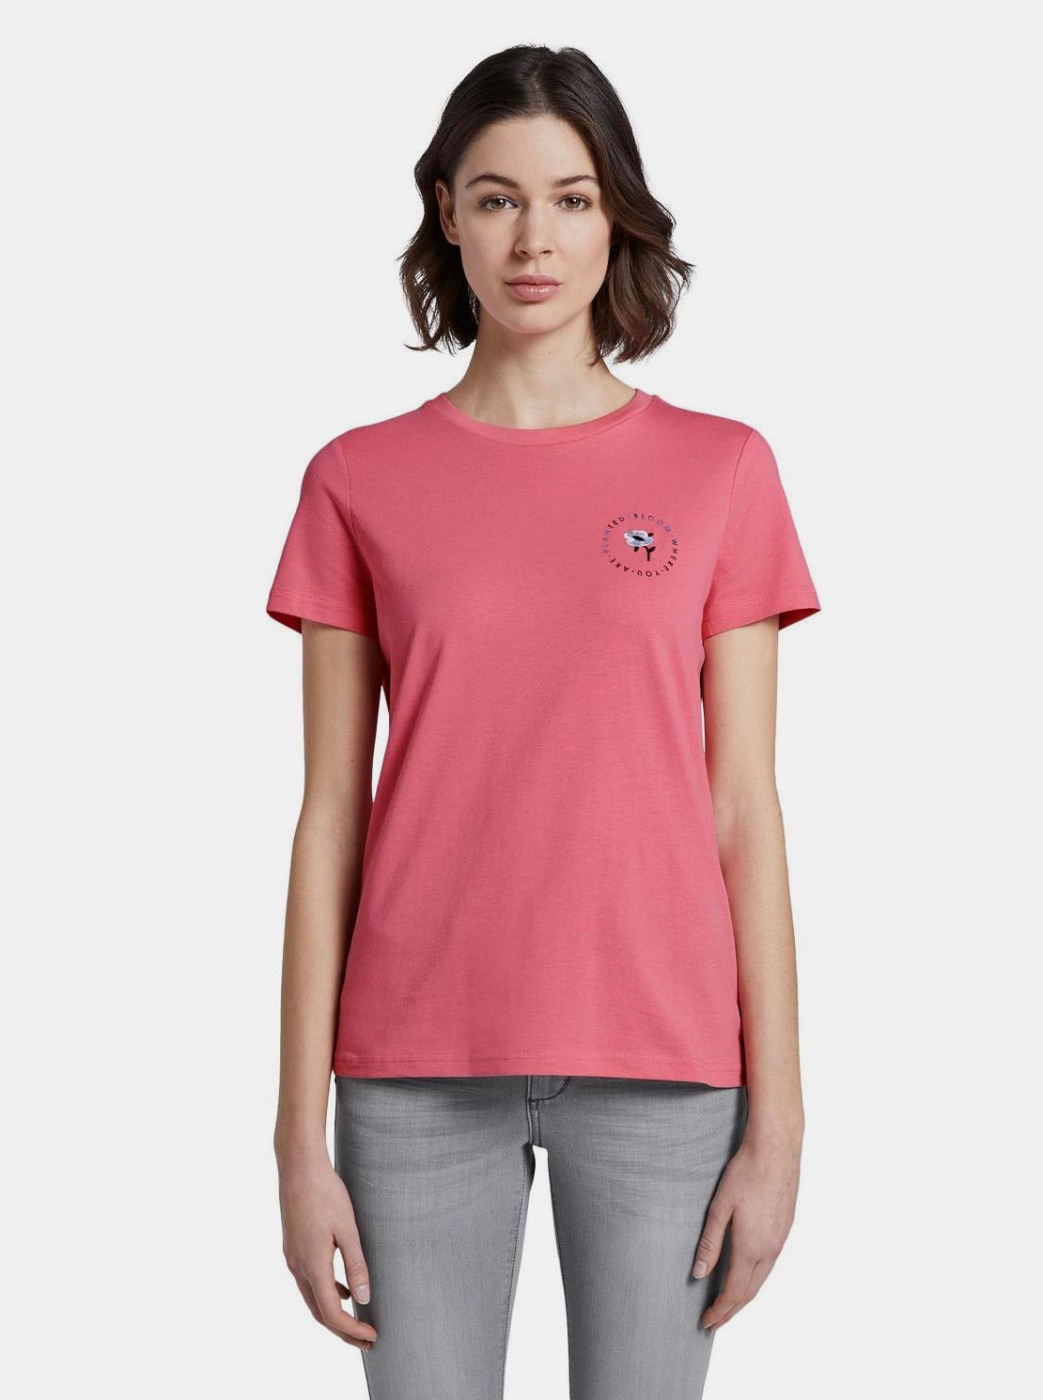 Tom Tailor Printed Pink Women's T-Shirt